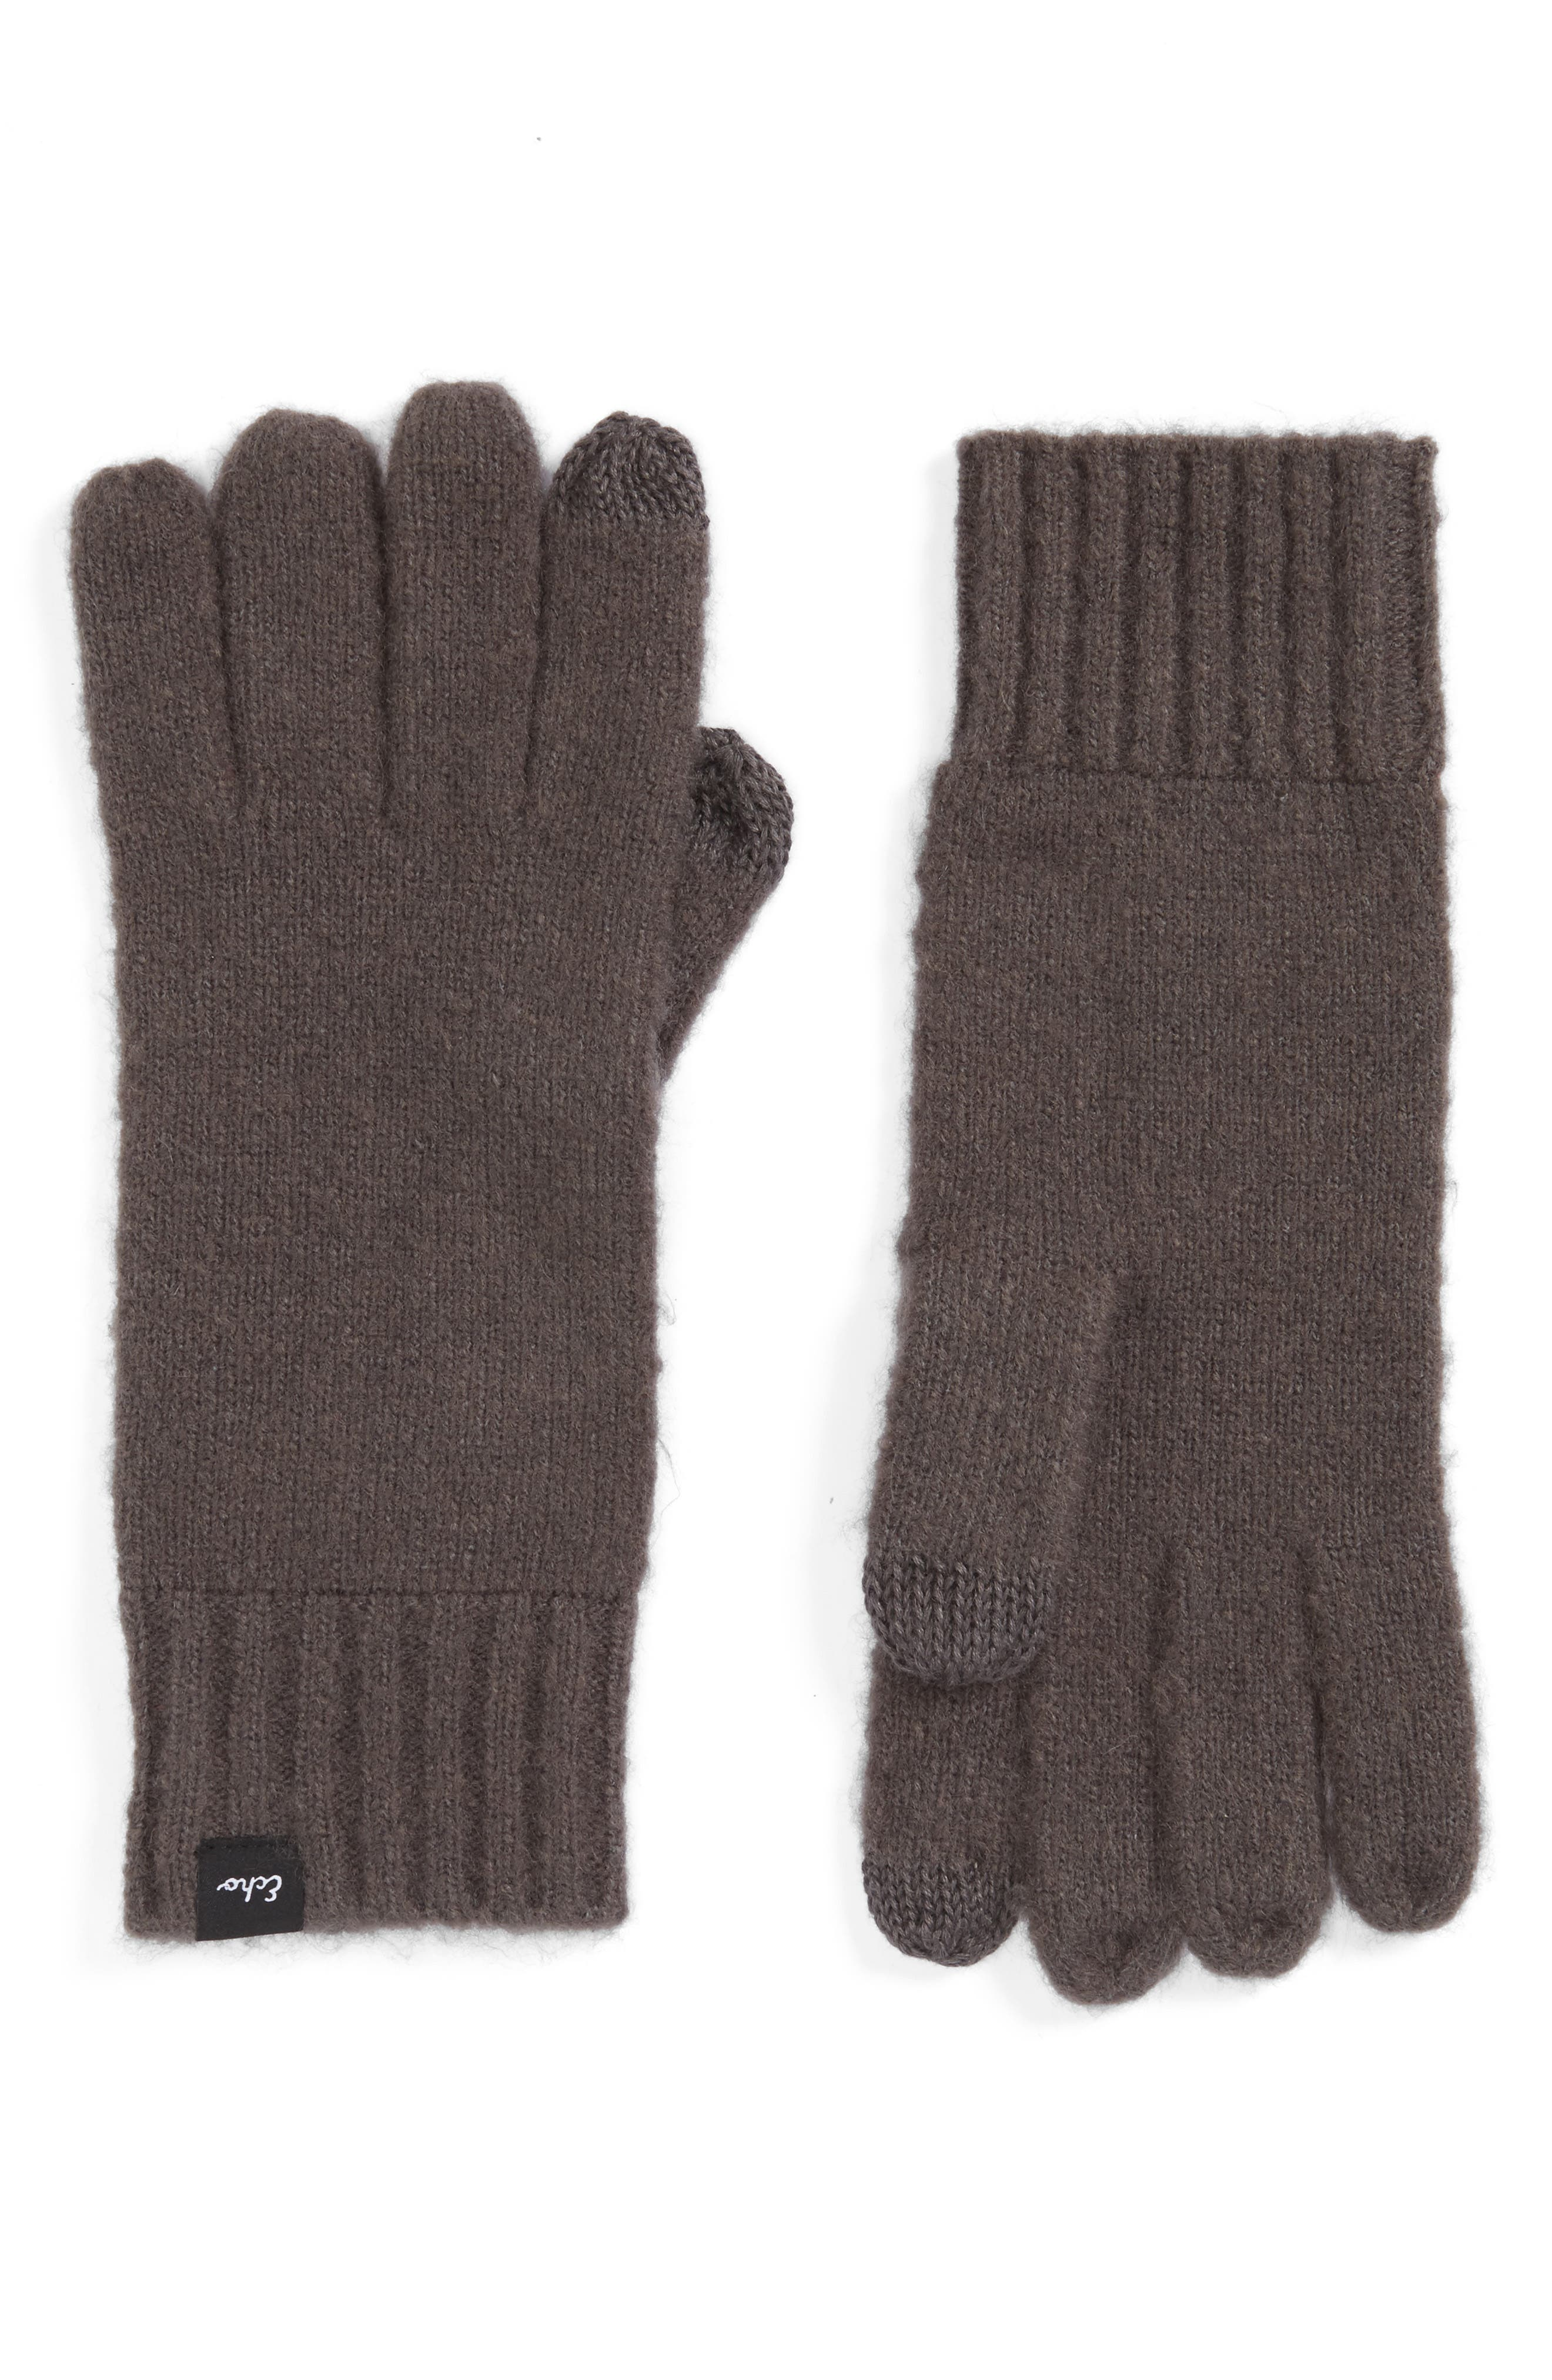 'Touch' Stretch Fleece Tech Gloves,                         Main,                         color, 011